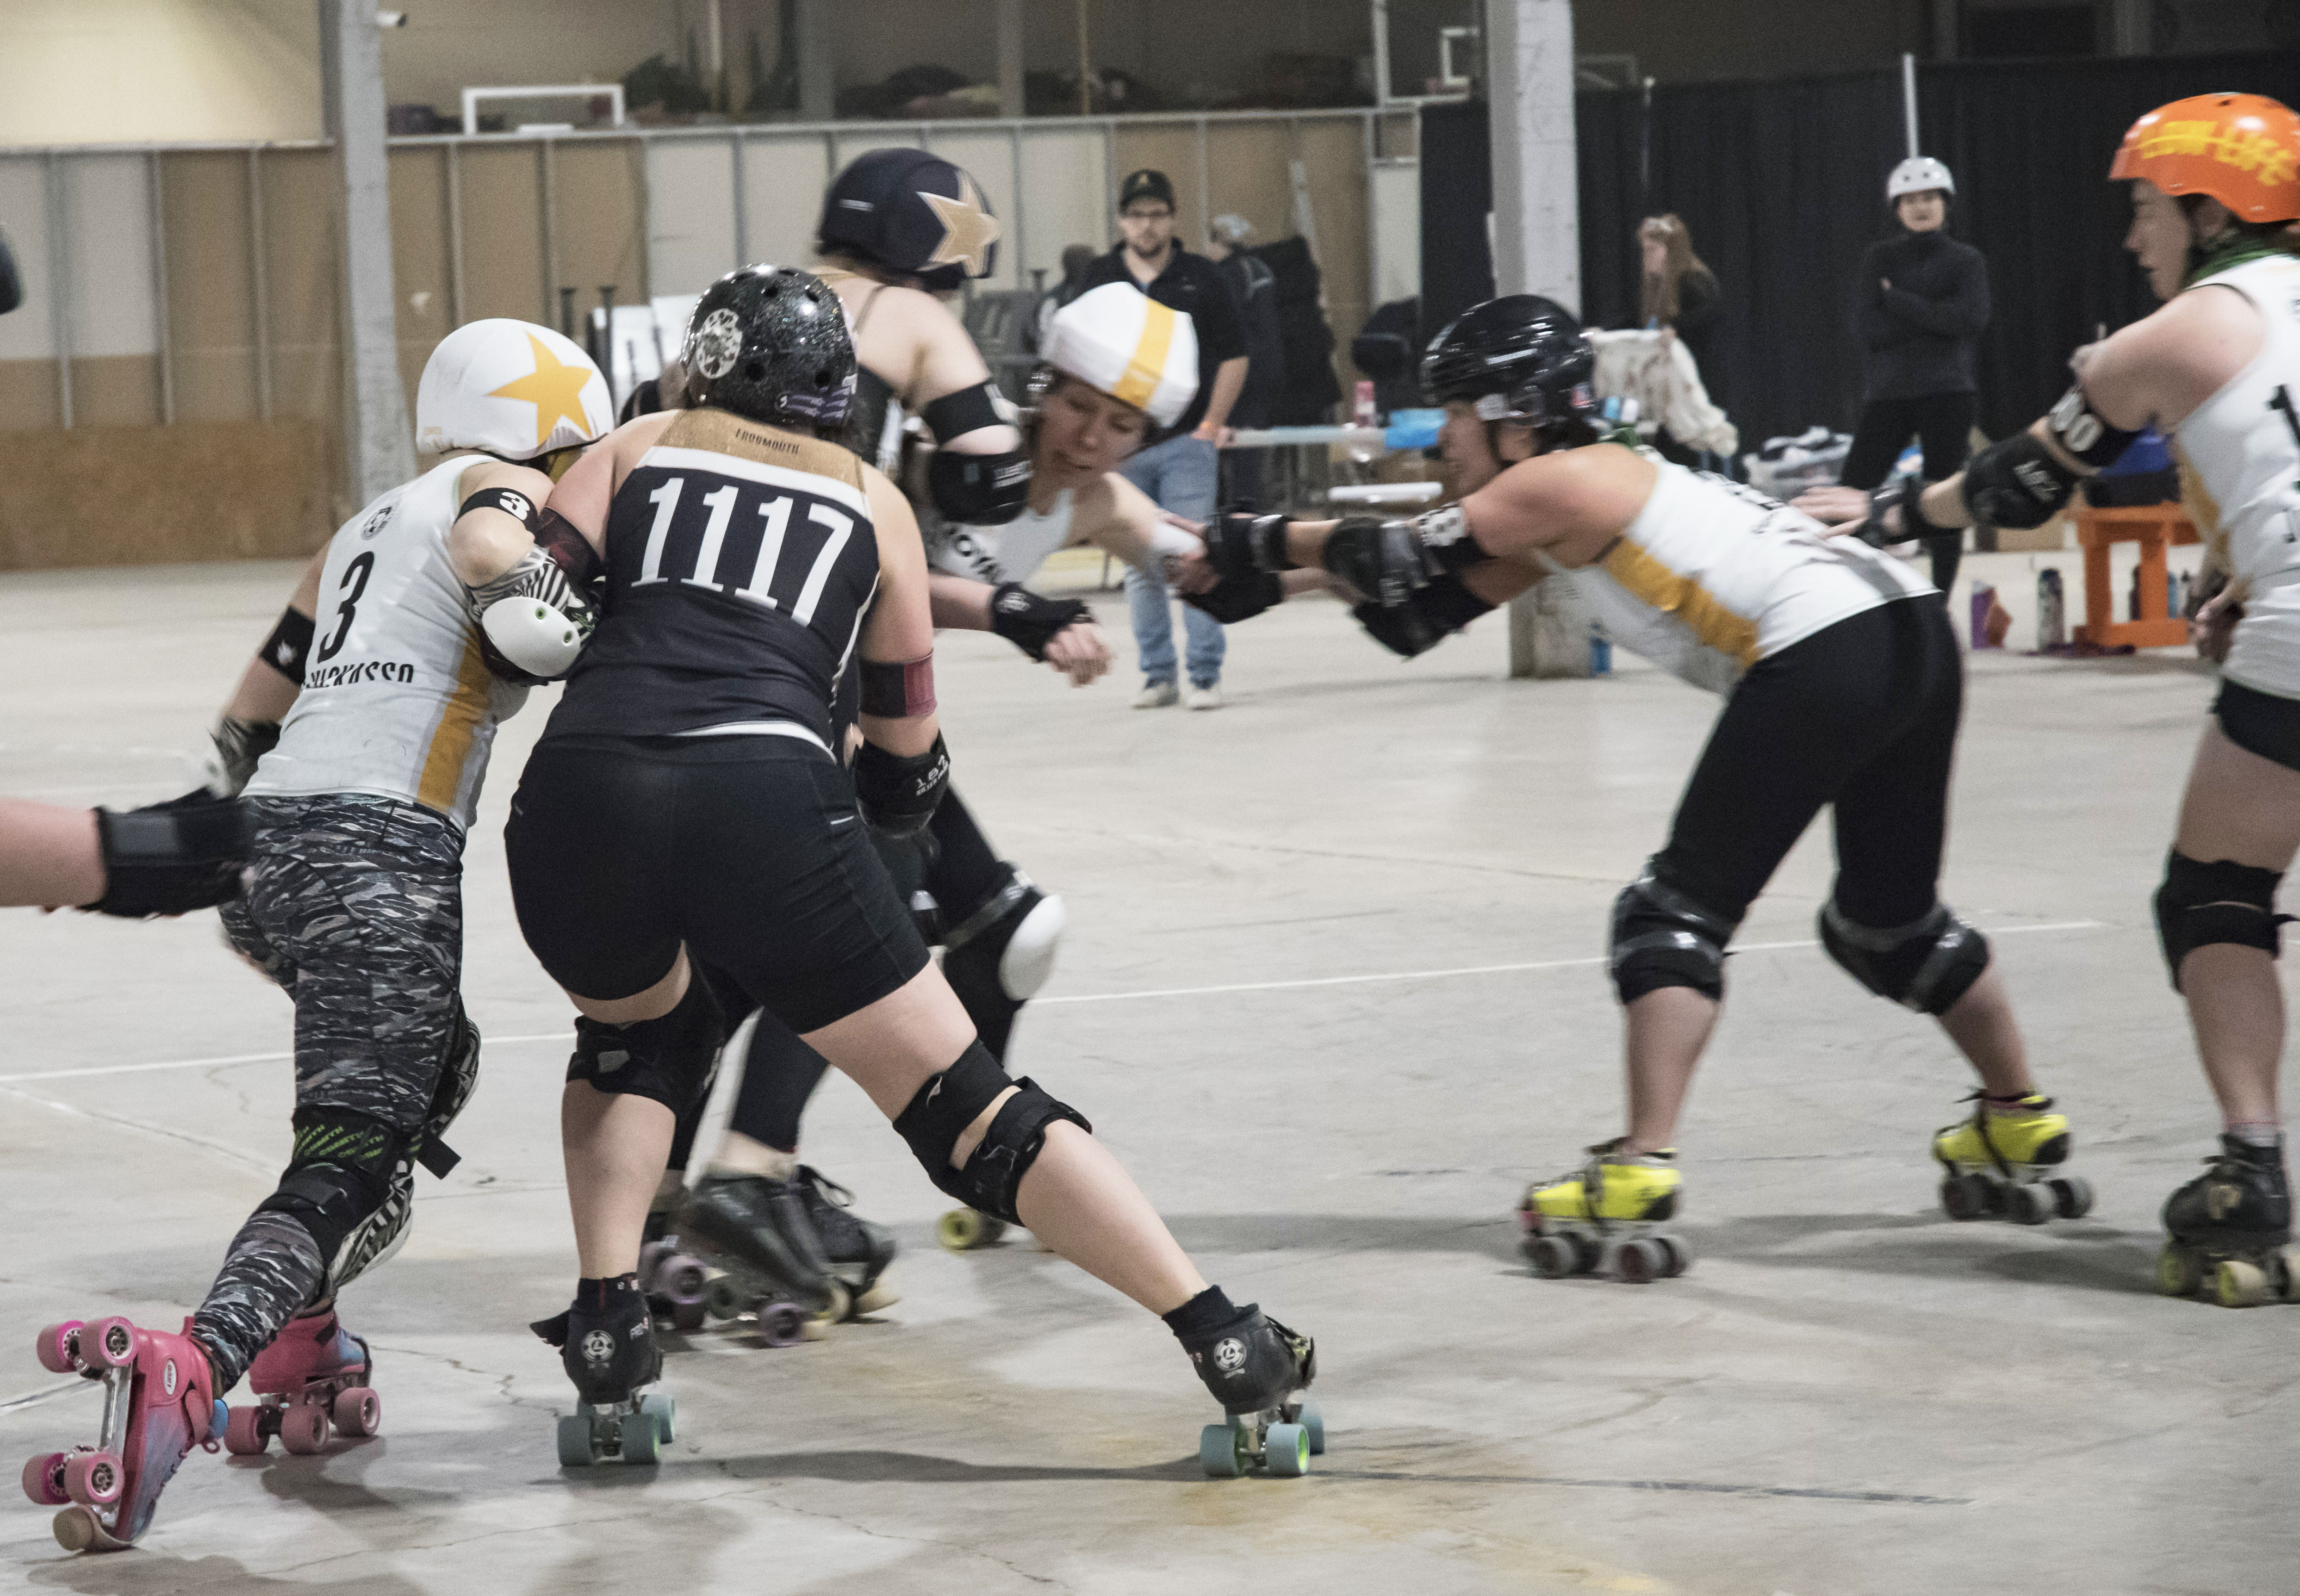 """Pablo Kickasso pushing hard; Swedish Meatbrawl, Snack Dragon, And Just DezHurts maintain the wall Image courtesy of Meg """"Meh G'Byte"""" Reed of Bloomington, Indiana"""